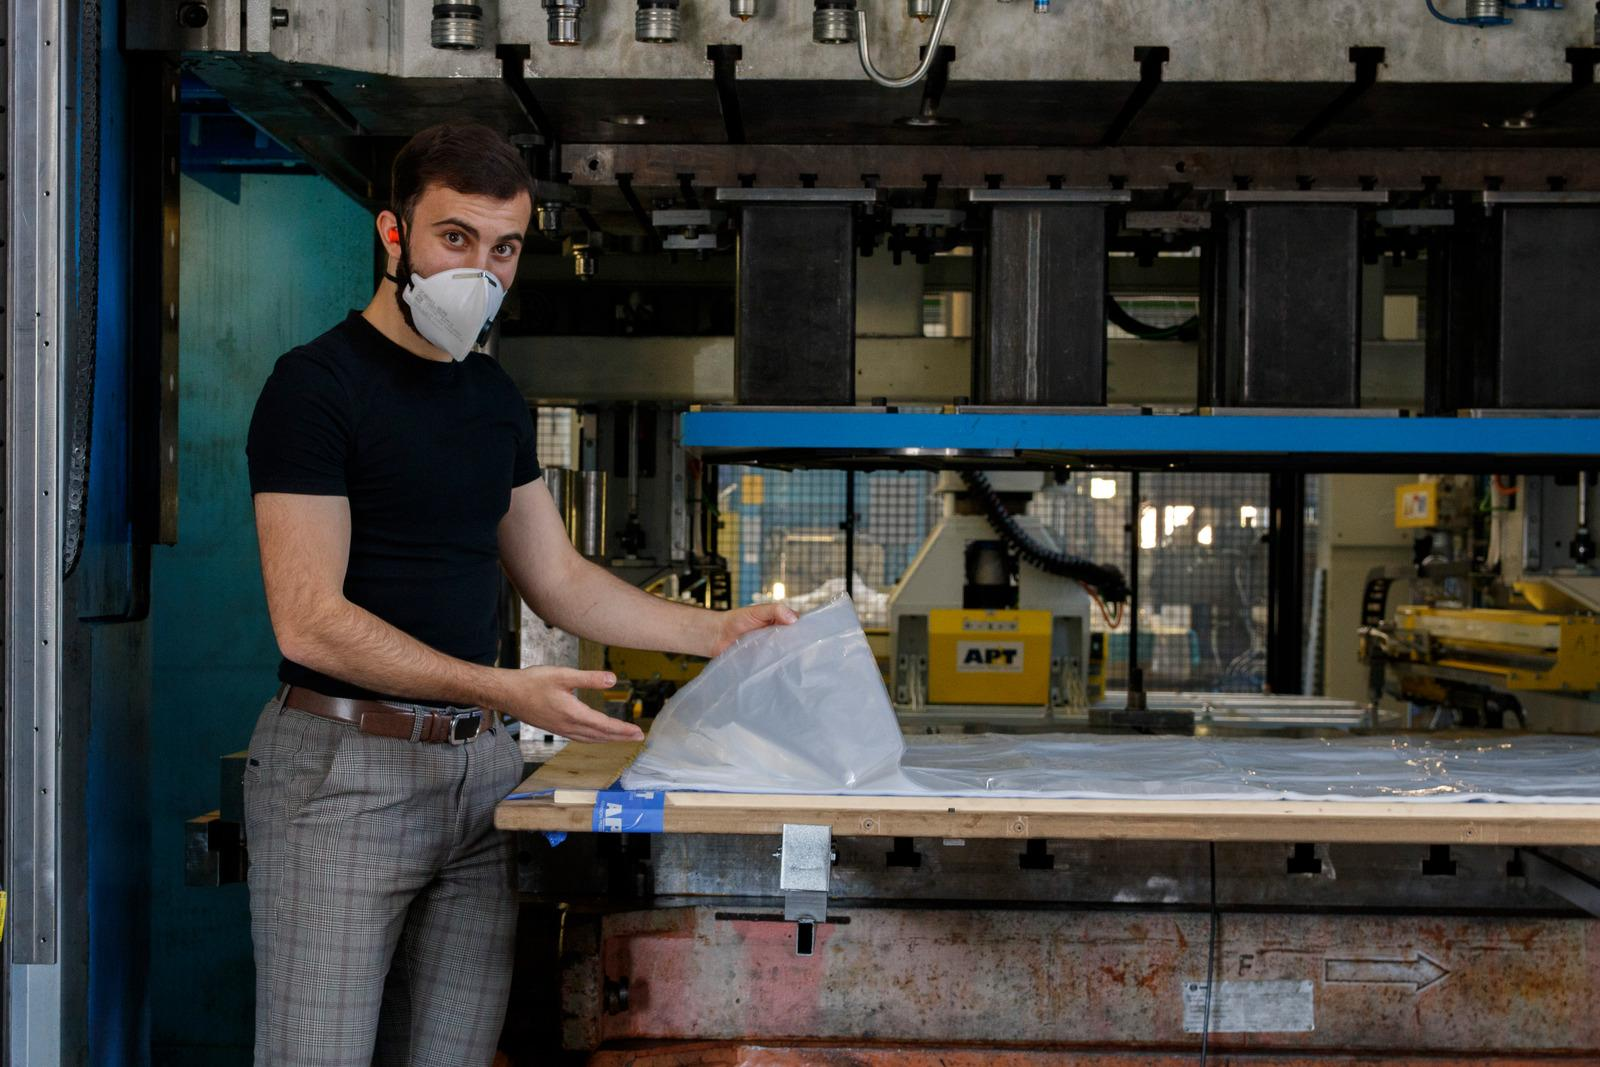 At AP&T in Ulricehamn, large volumes of plastic protective aprons for healthcare professionals are cut. Hassan Kanaan is the production technician responsible for the project.